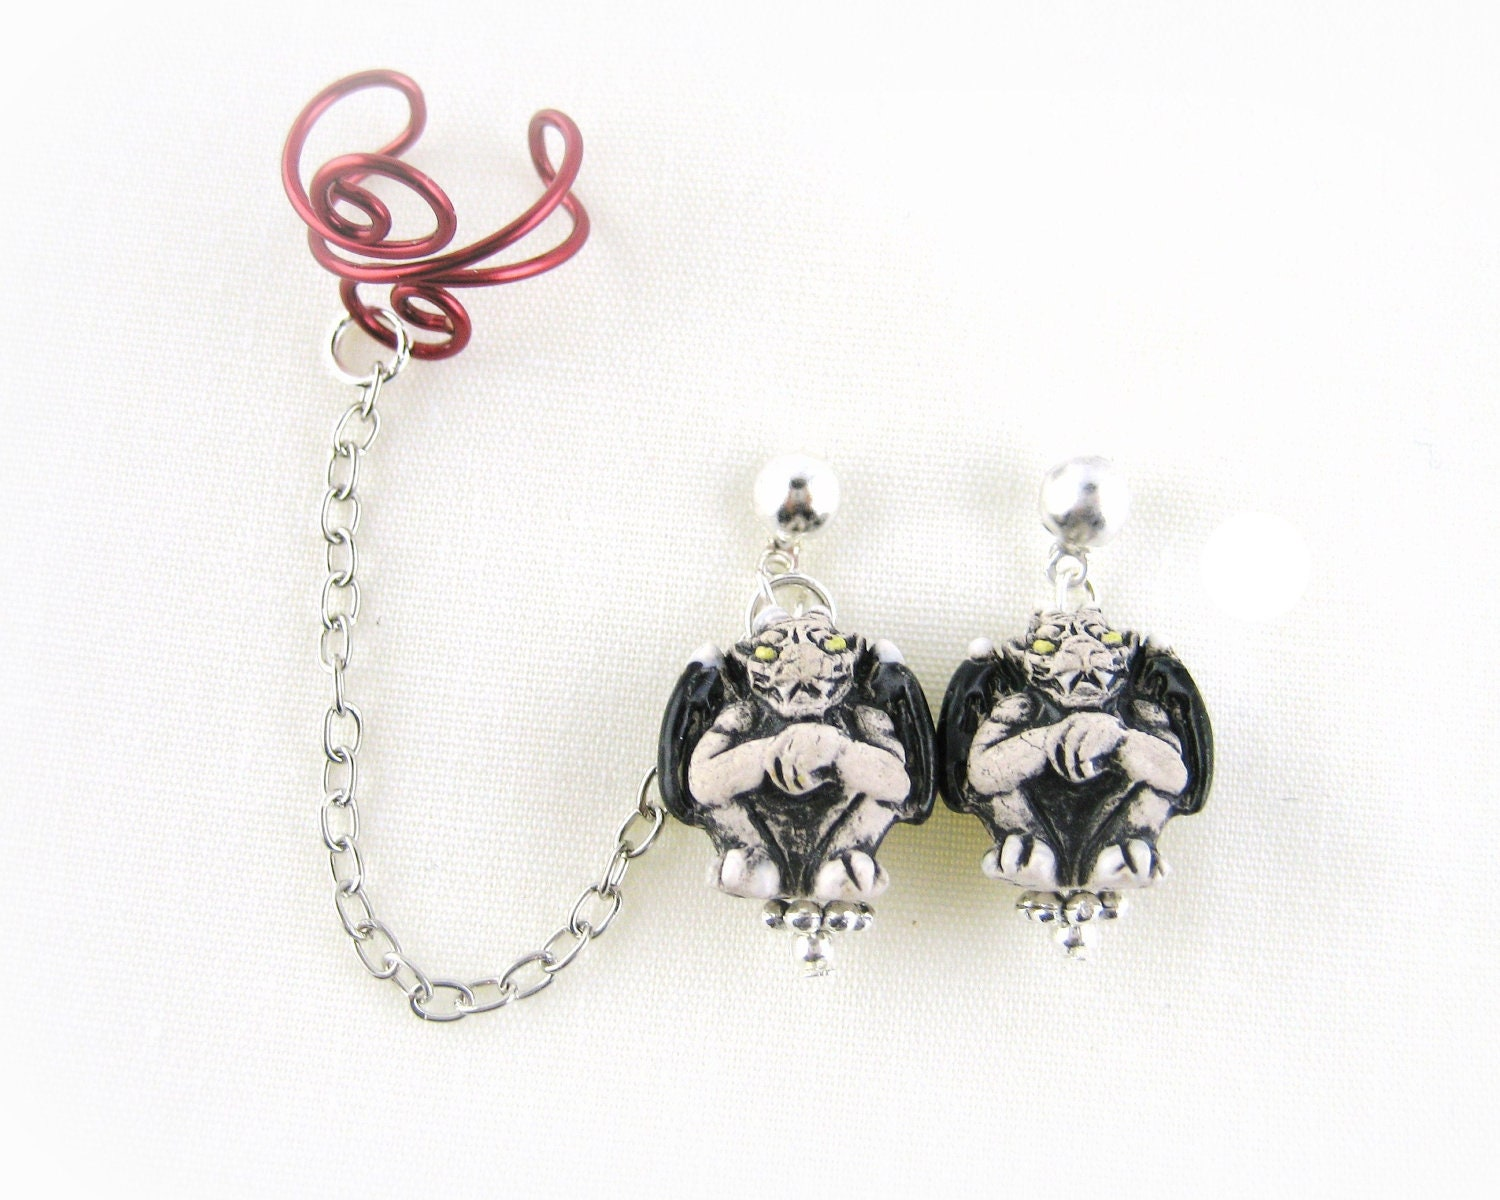 Ear Cuff Earrings With Chain http://www.etsy.com/listing/107634633/gothic-earring-earcuff-gothic-ear-cuff